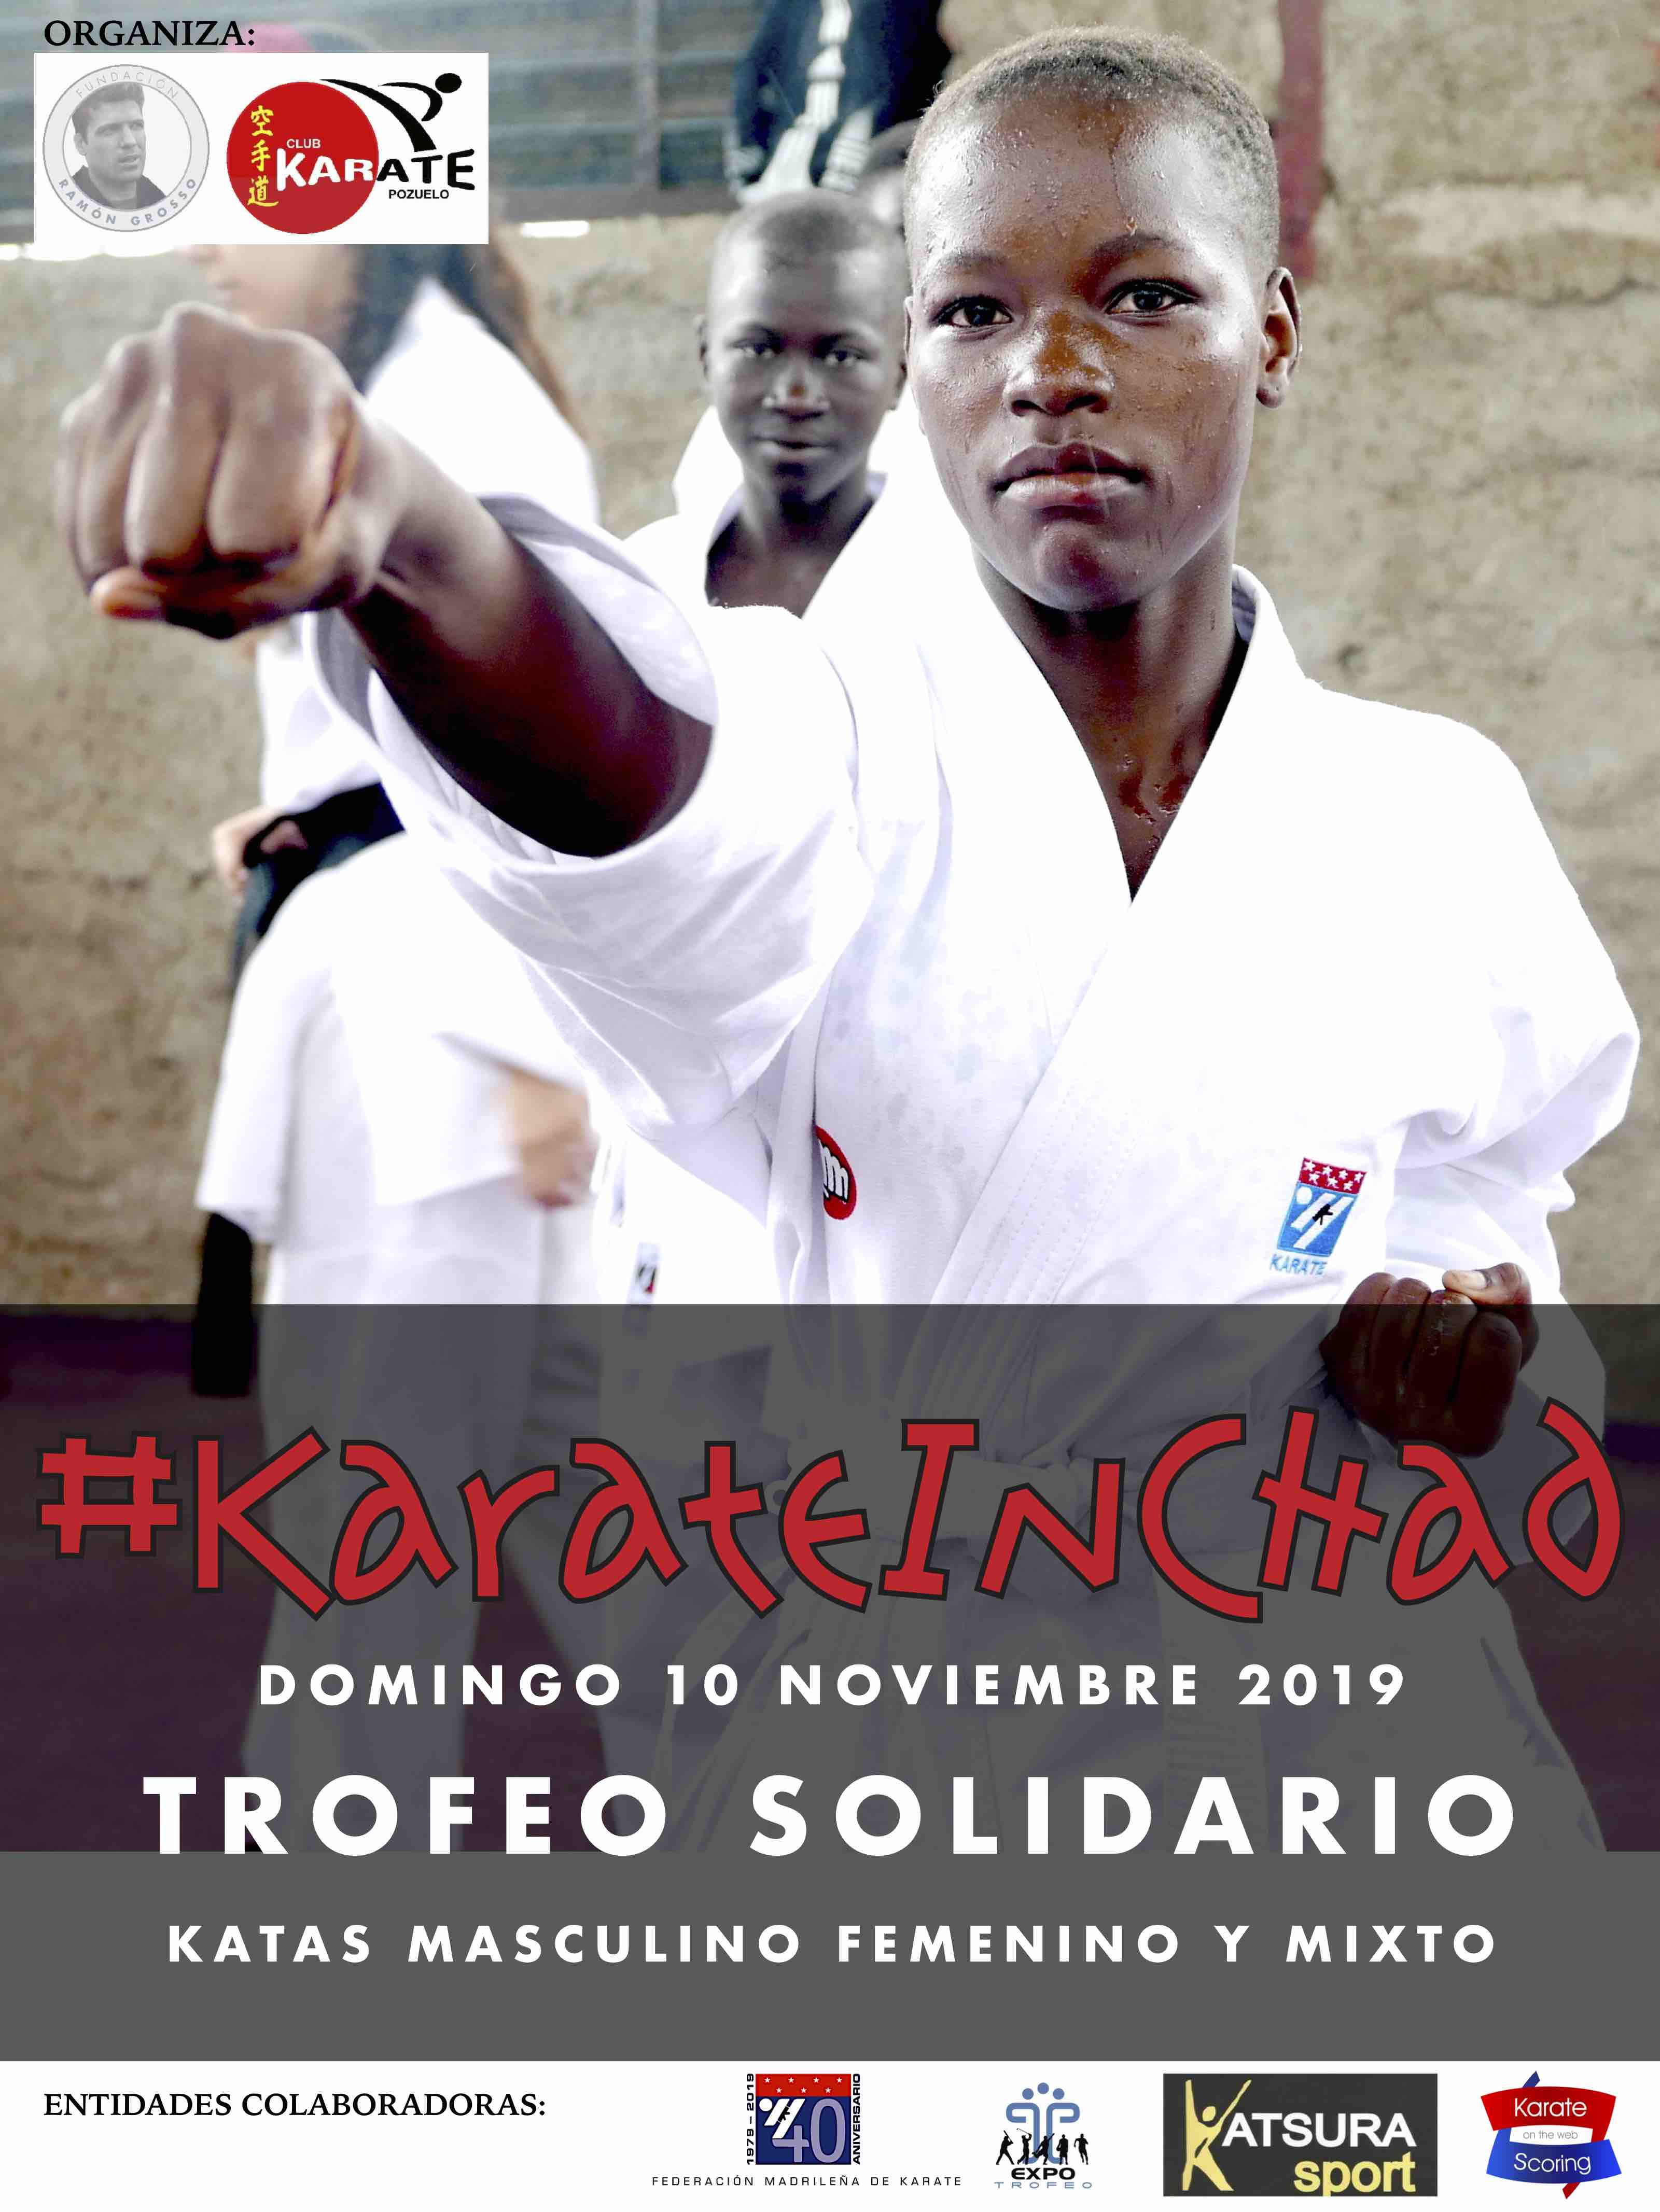 Trofeo solidario Karate in Chad 2019